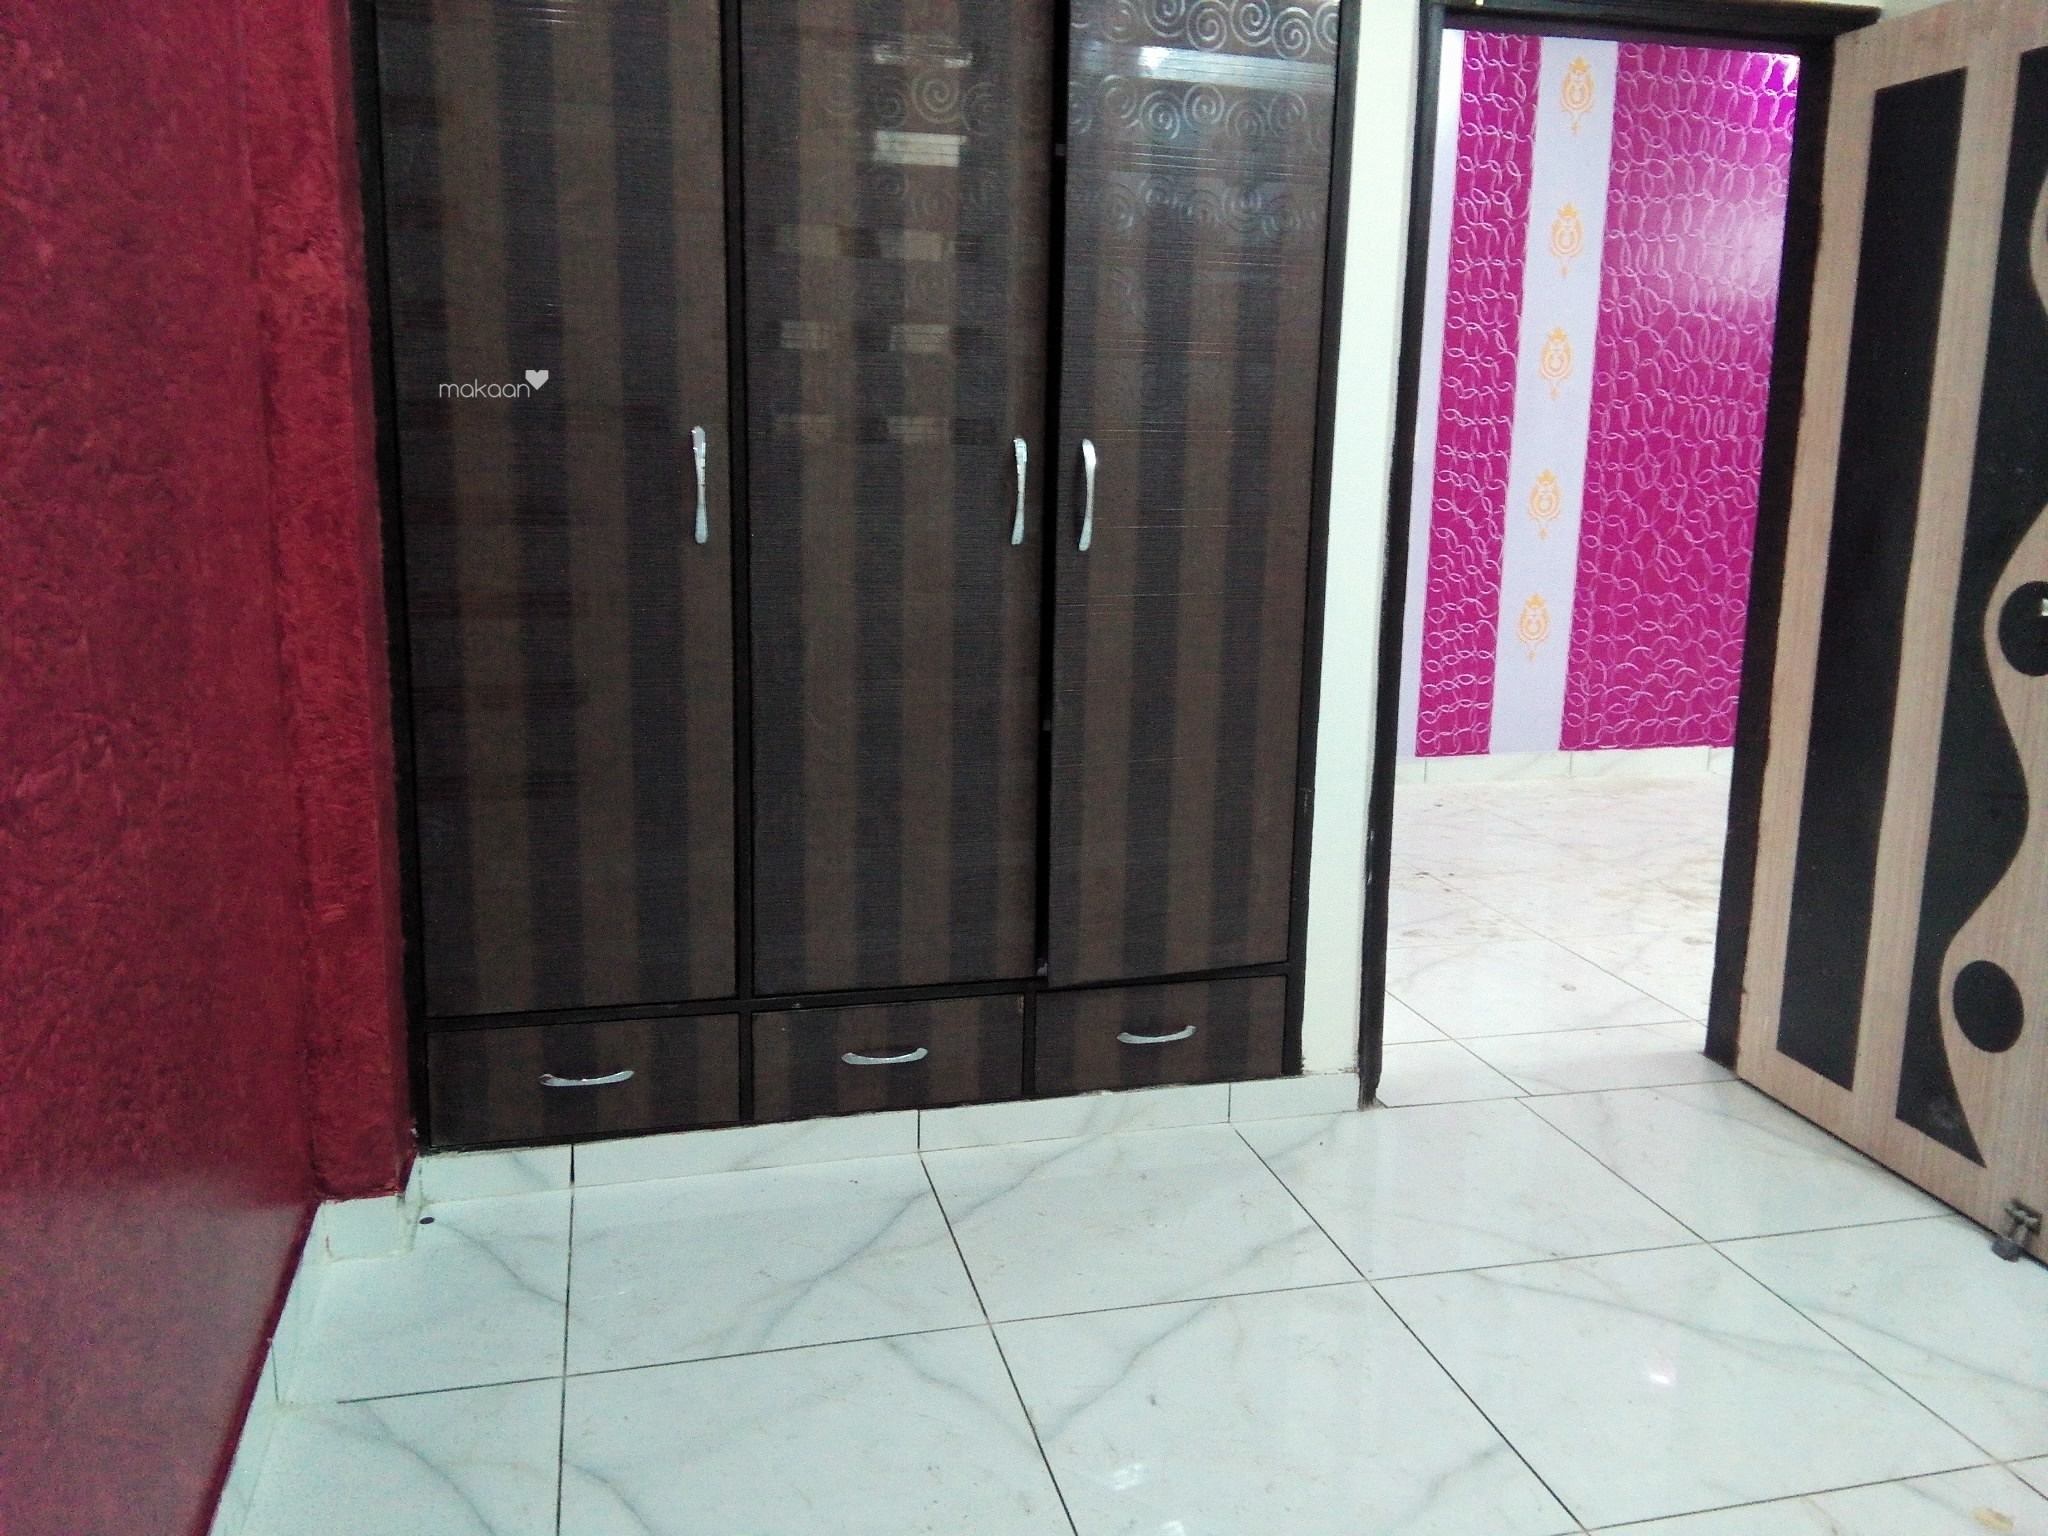 554 sq ft 1BHK 1BHK+2T (554 sq ft) Property By Demera Homz In Project, Indra Puram